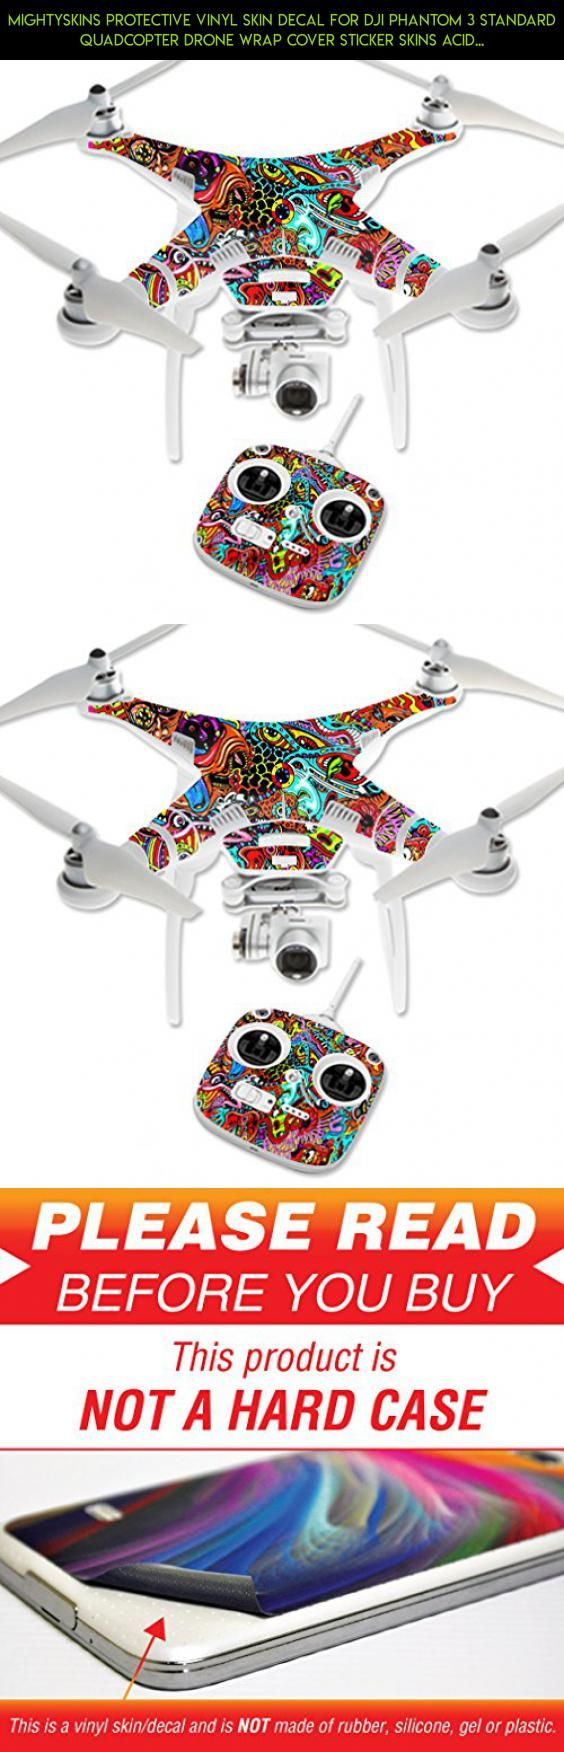 MightySkins Protective Vinyl Skin Decal for DJI Phantom 3 Standard Quadcopter Drone wrap cover sticker skins Acid Trippy #fpv #kit #3 #stickers #gadgets #tech #drone #dji #camera #standard #technology #phantom #plans #shopping #racing #products #parts